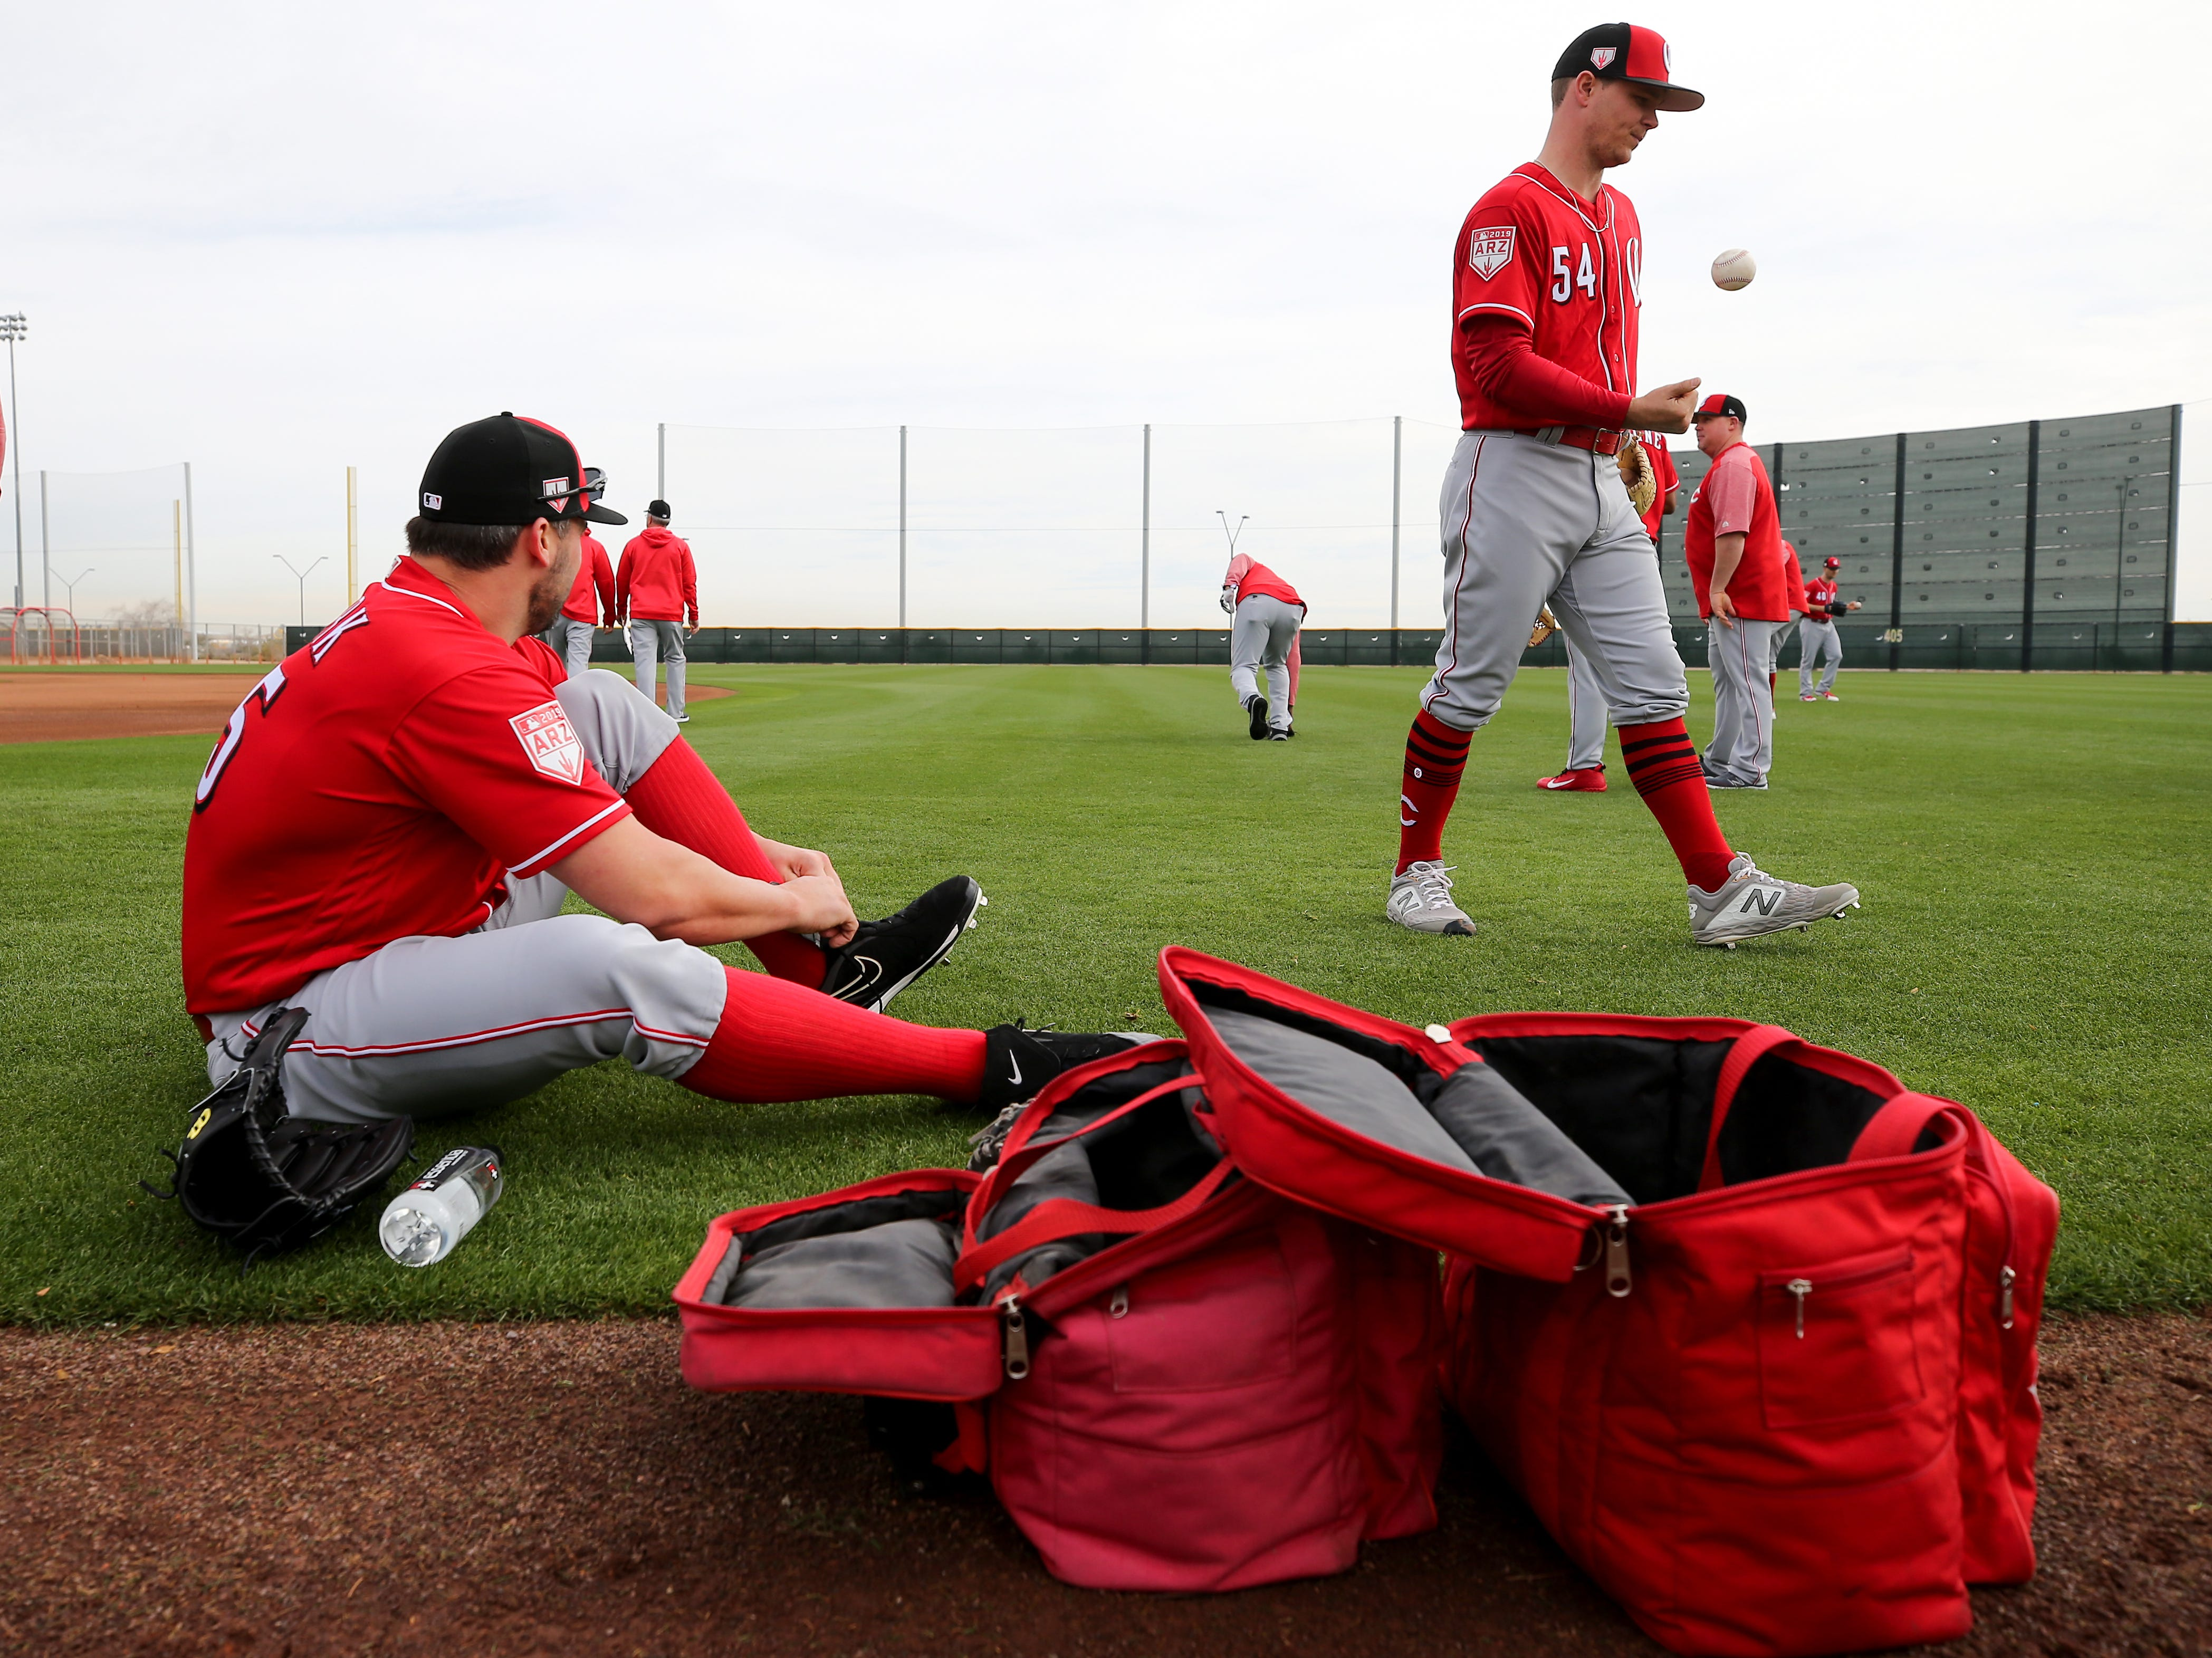 Cincinnati Reds pitcher Tanner Roark (35), left, and Cincinnati Reds starting pitcher Sonny Gray (54) right, warm up, Wednesday, Feb. 13, 2019, at the Cincinnati Reds spring training facility in Goodyear, Arizona.